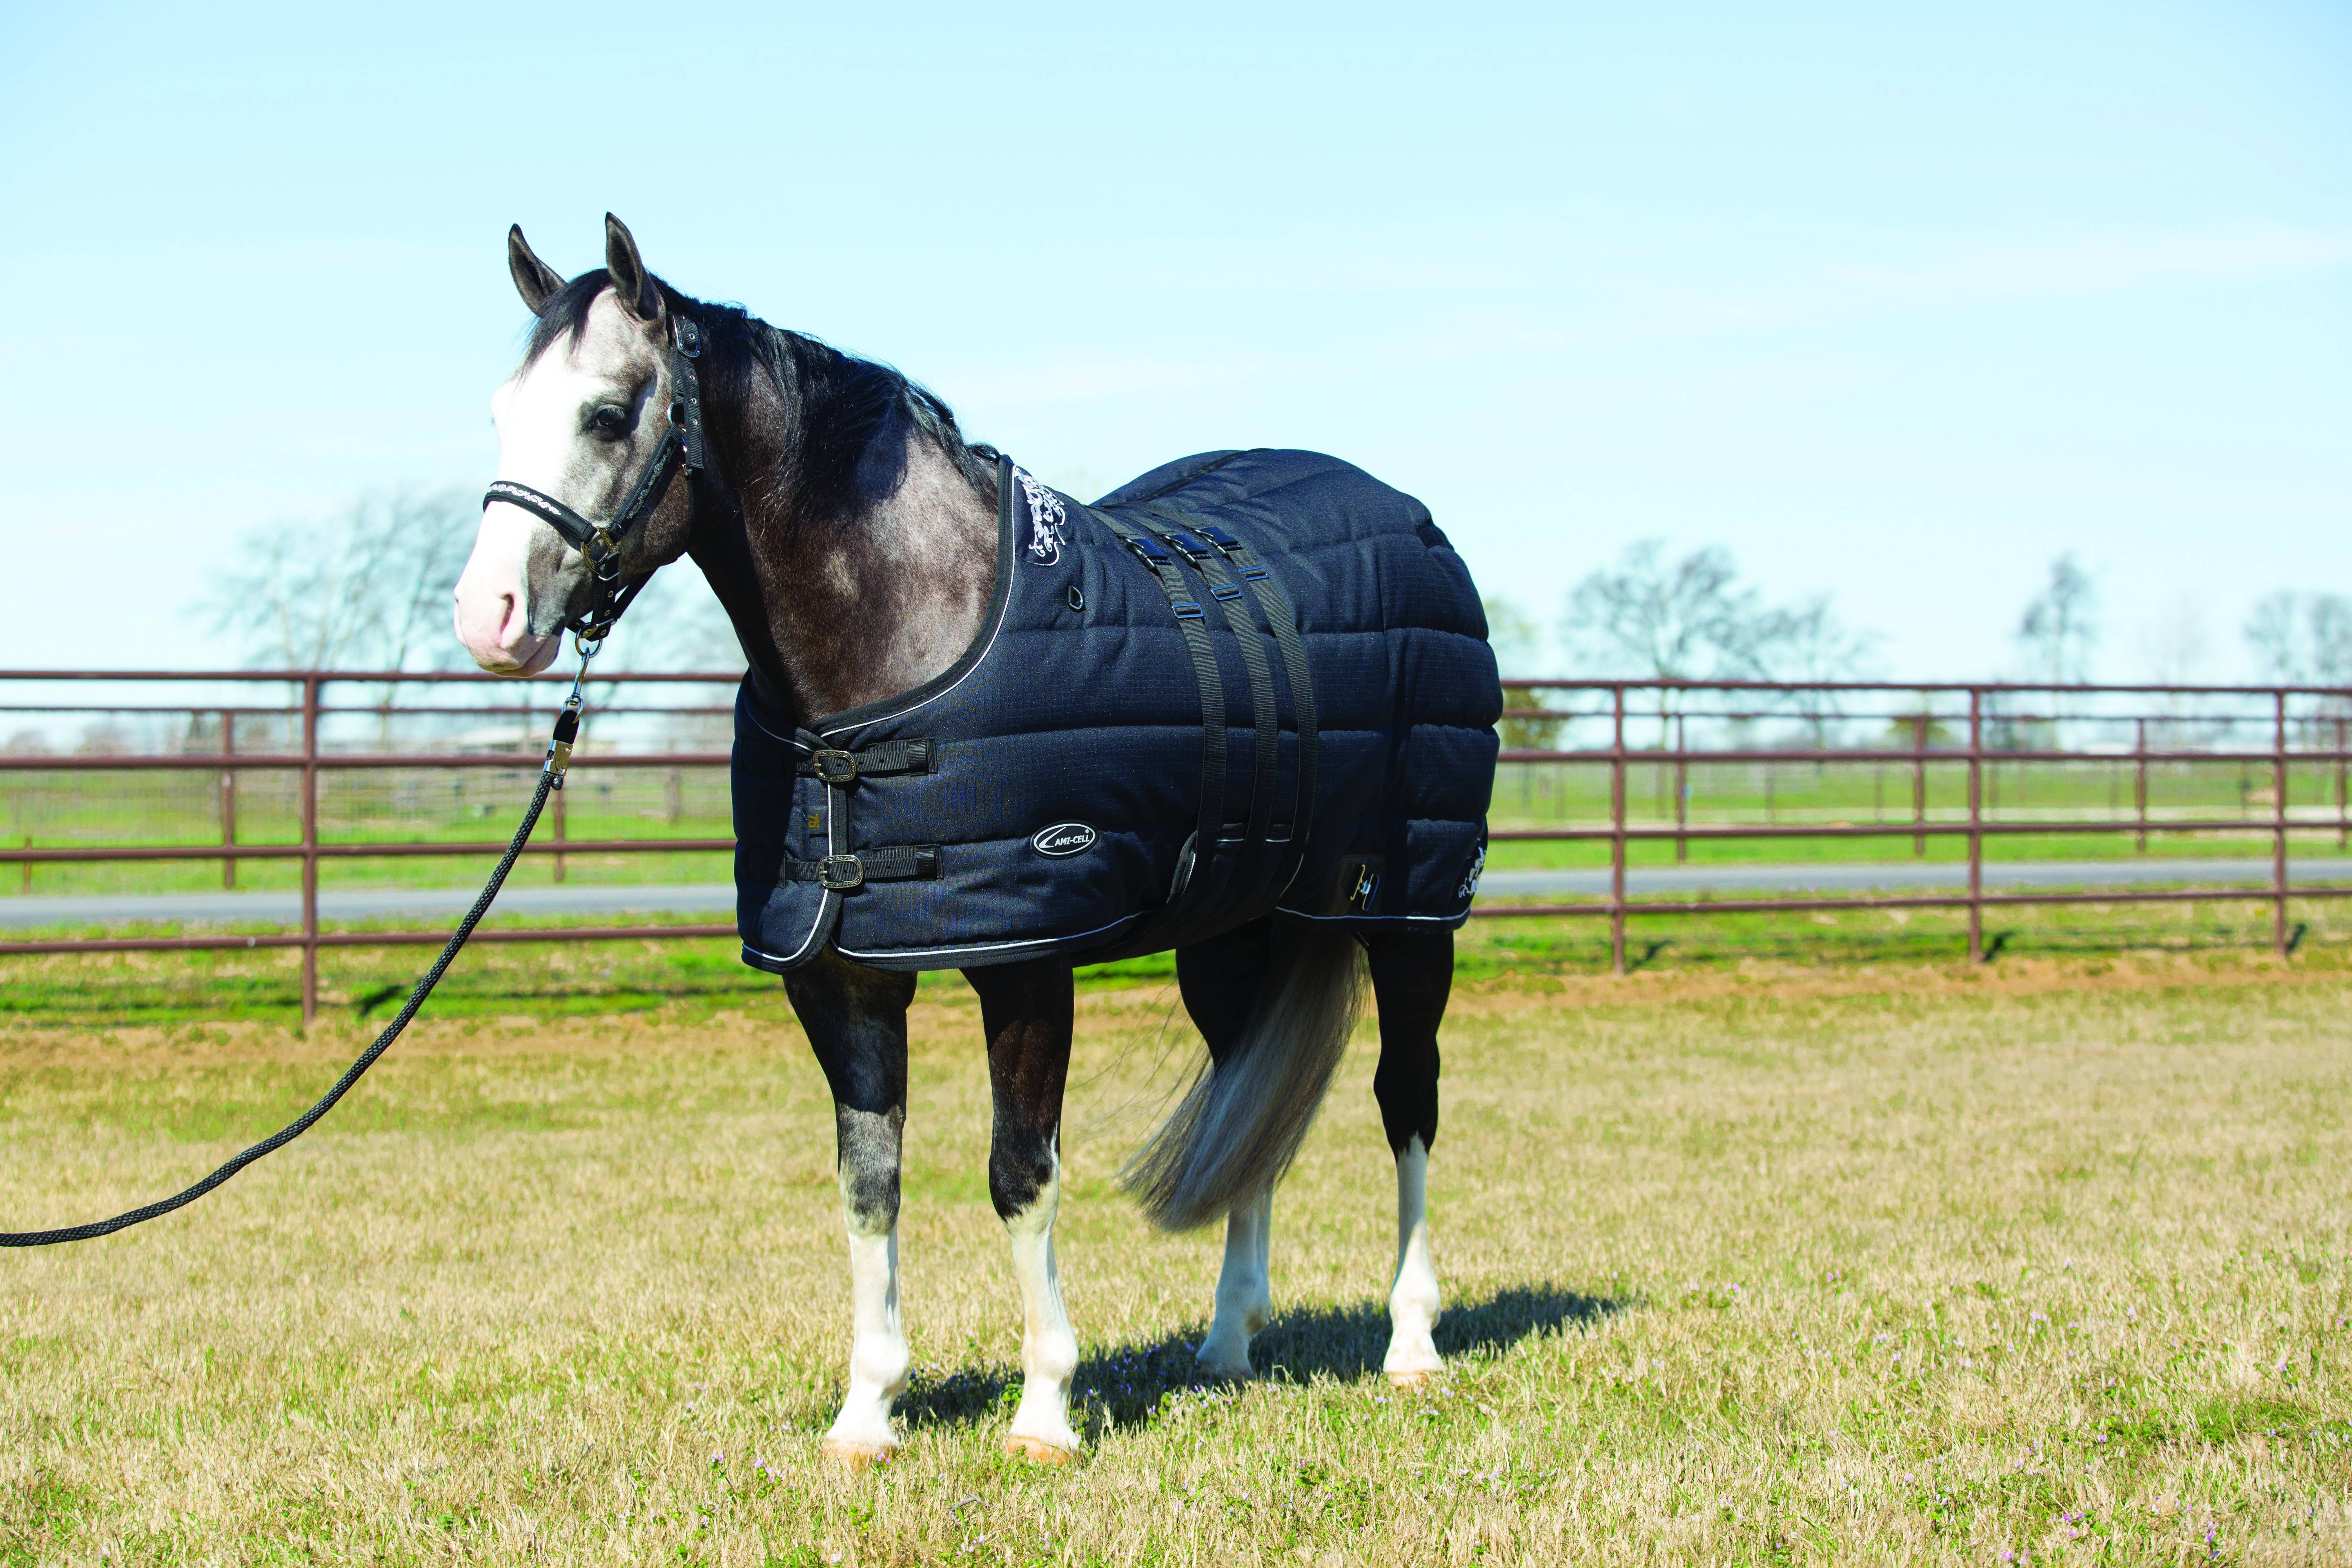 Cwell Equine New Mini Lightweight Turnout Shetland Rug Pony Foal No Fill Choice Of Sizes Colors 4 Feet 6 Inches Pink Xmas